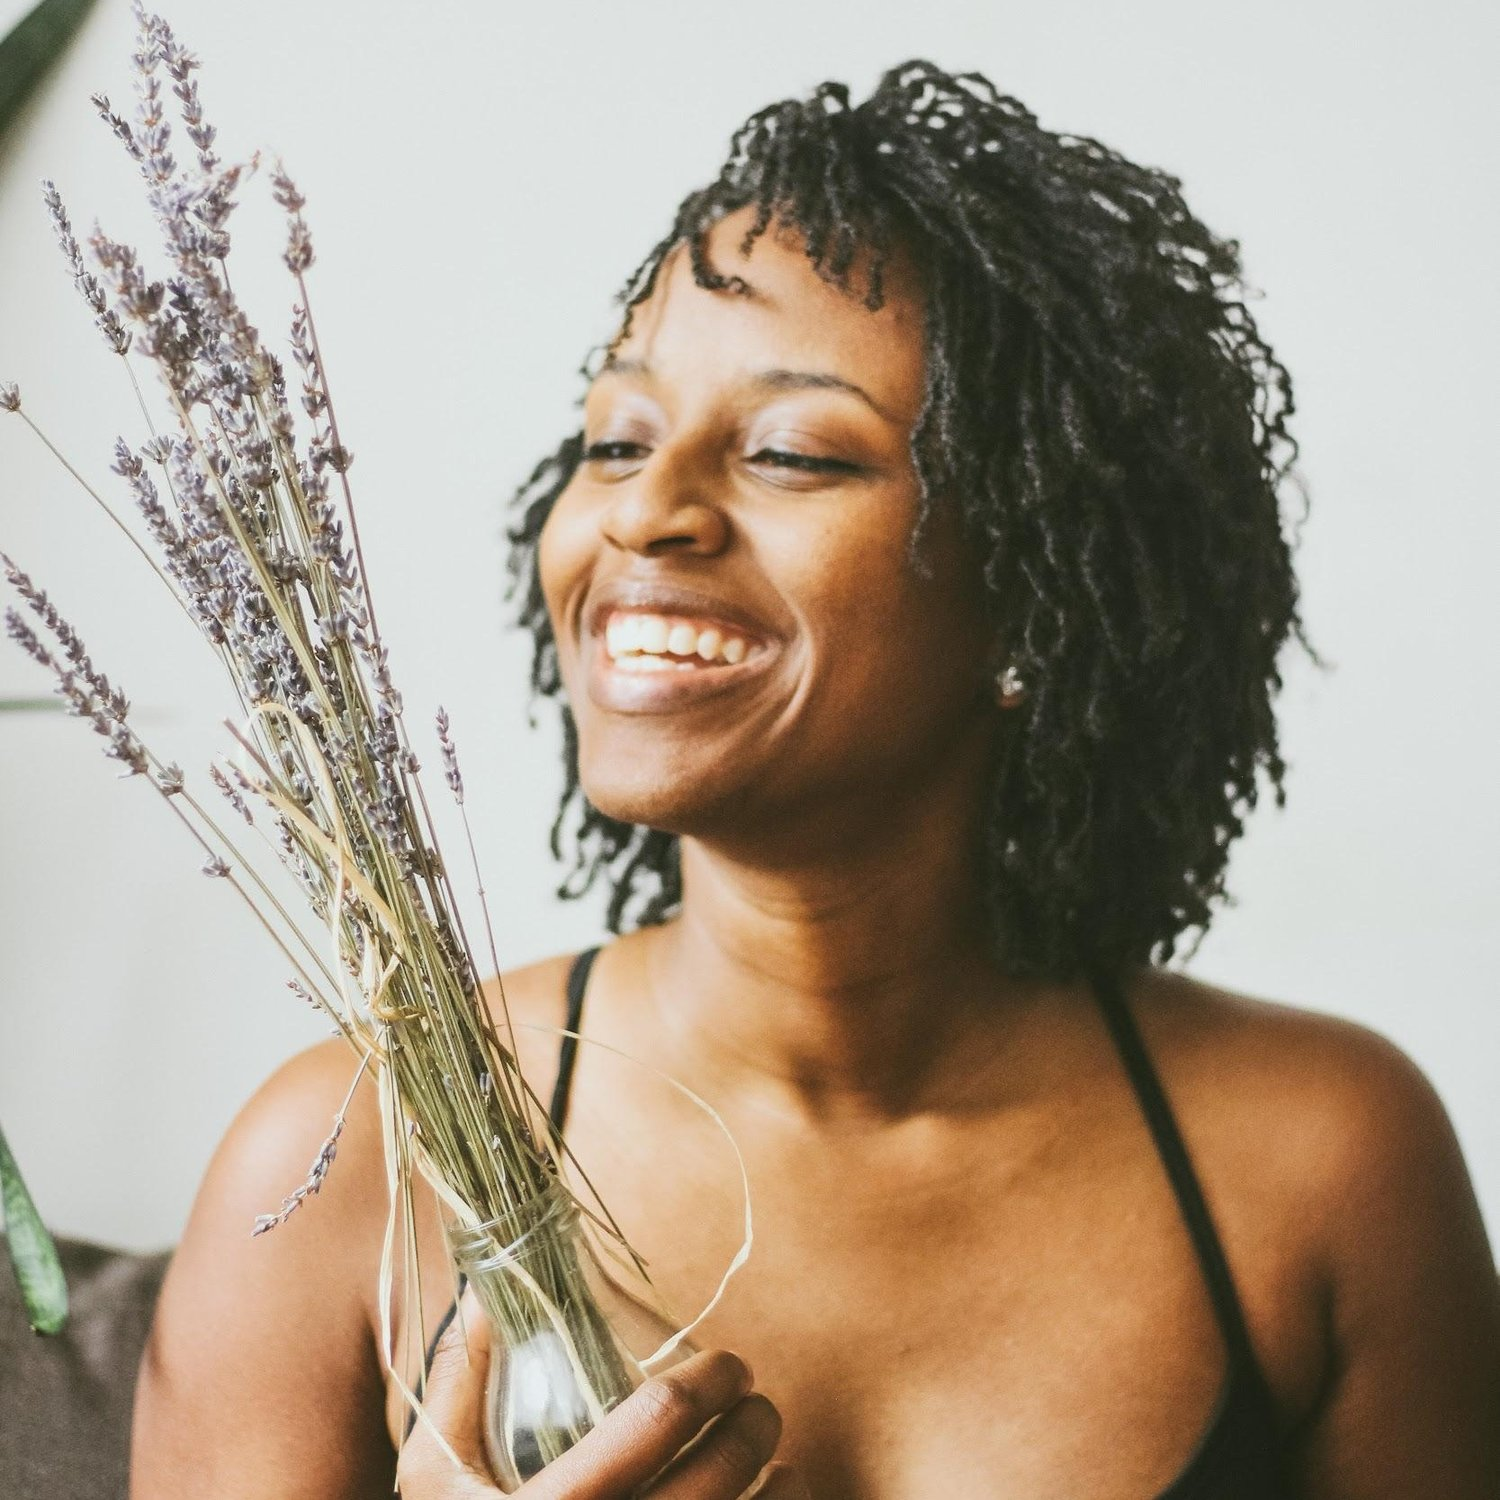 13 Black Women In Wellness Share What Wellness & Self Care Means To Them